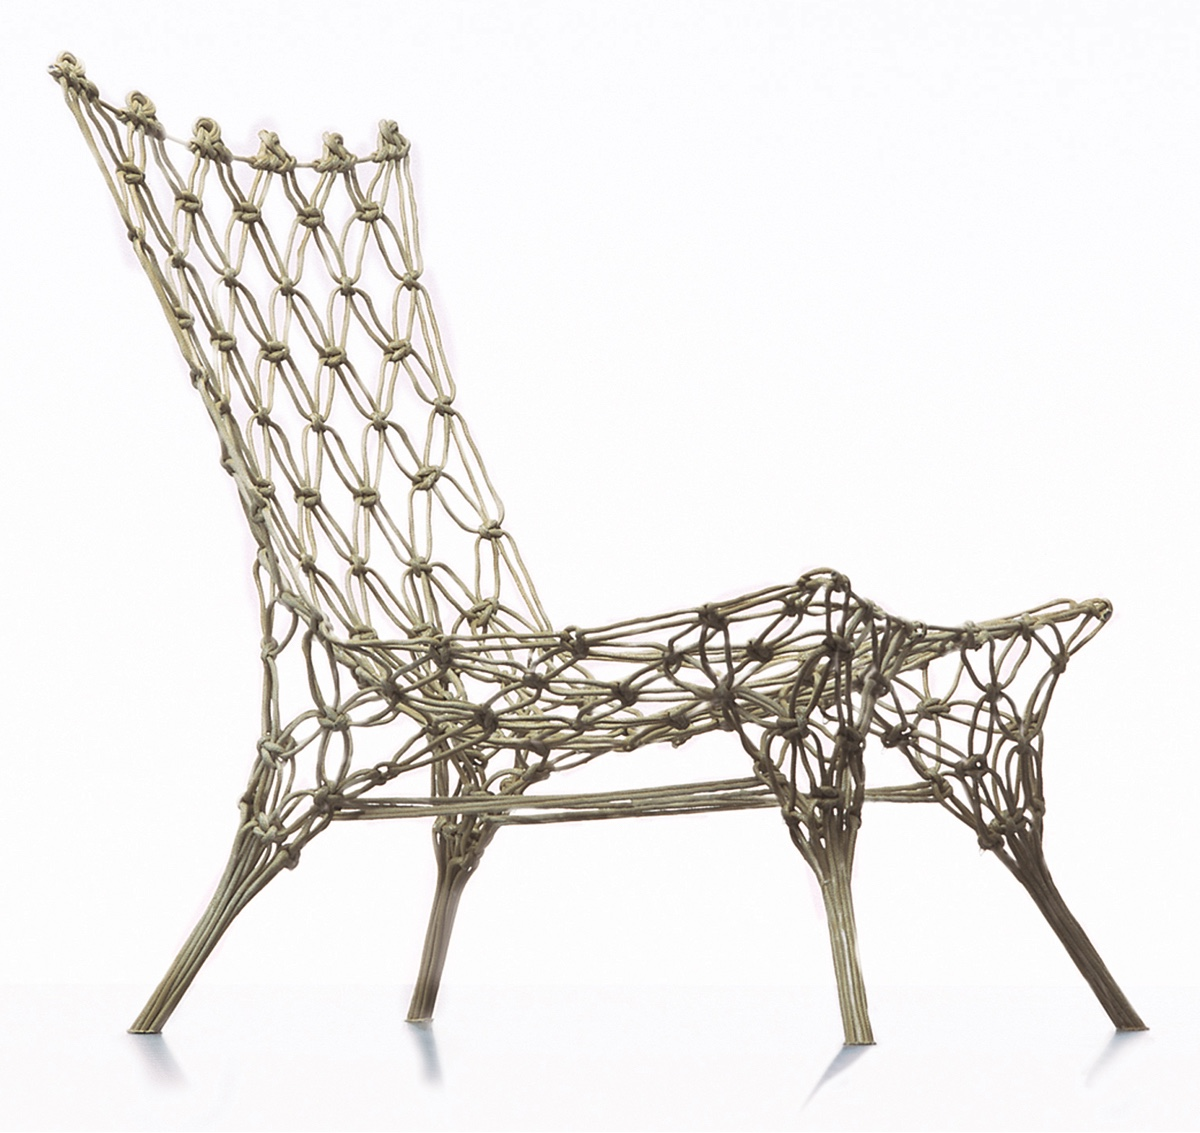 Knotted chair by Marcel Wanders.